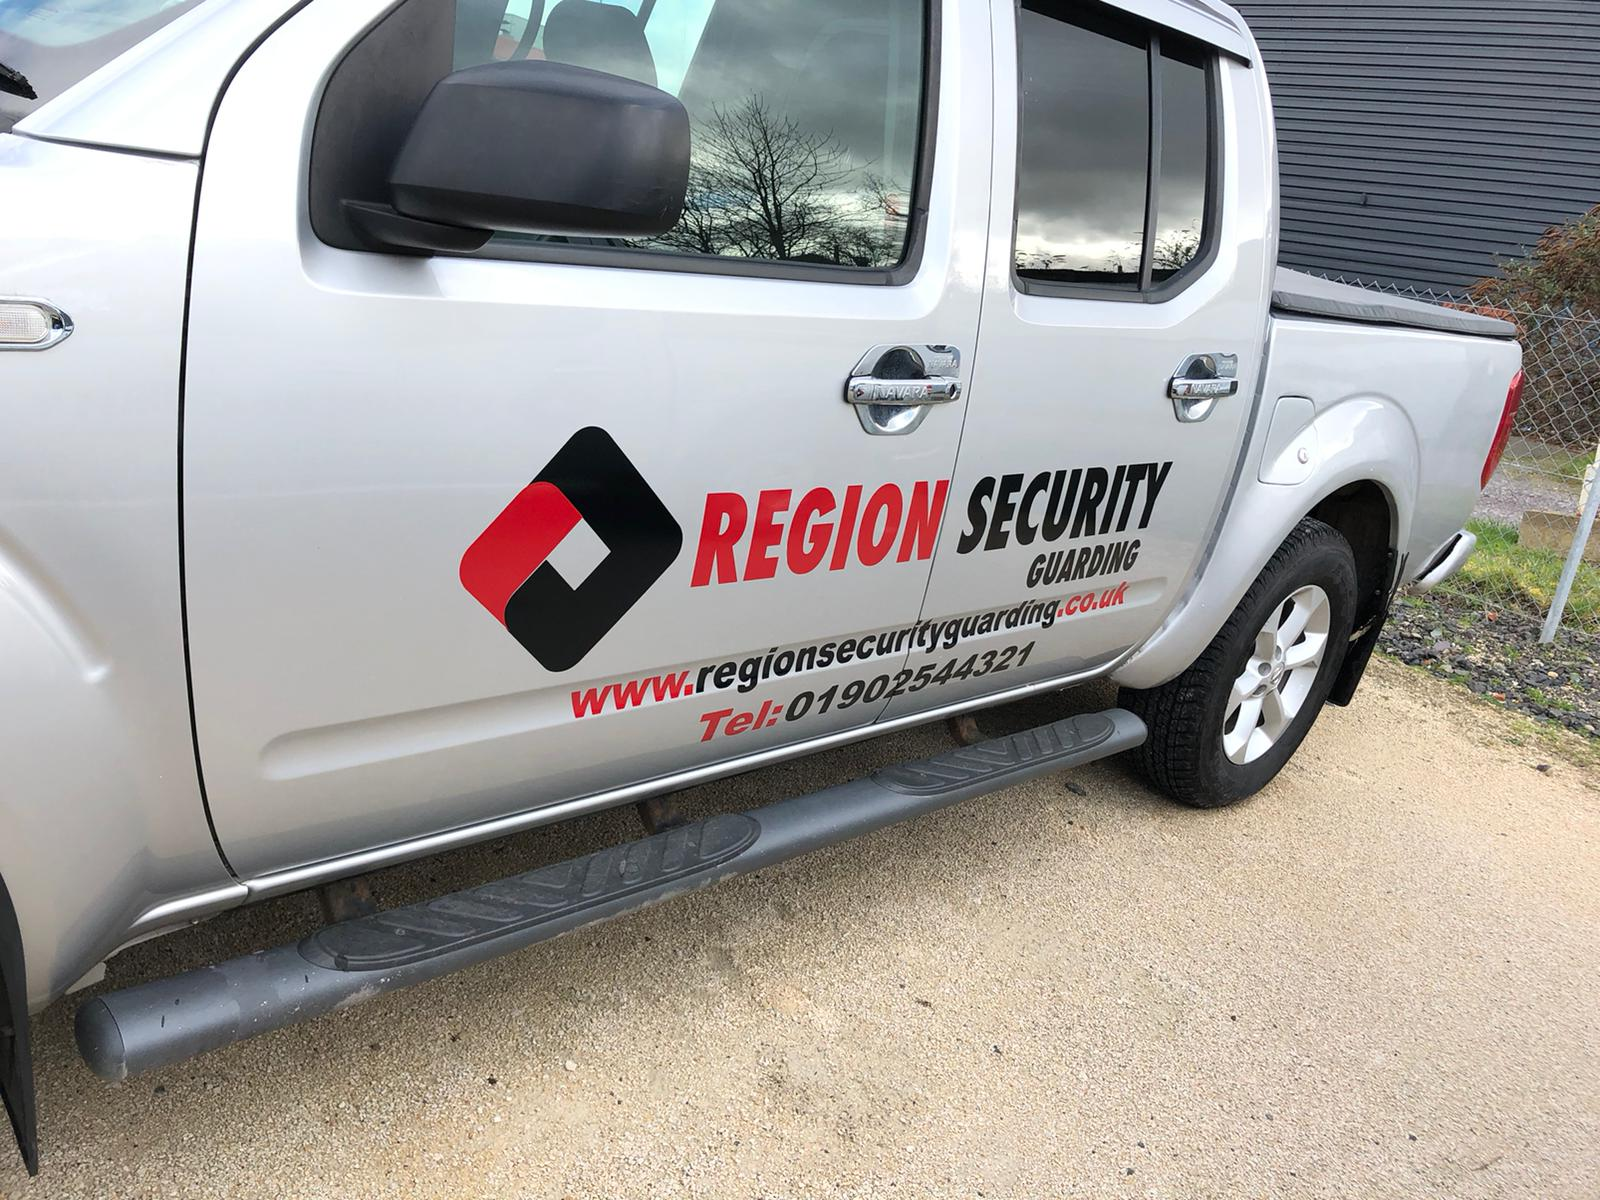 Security Company Flintshire